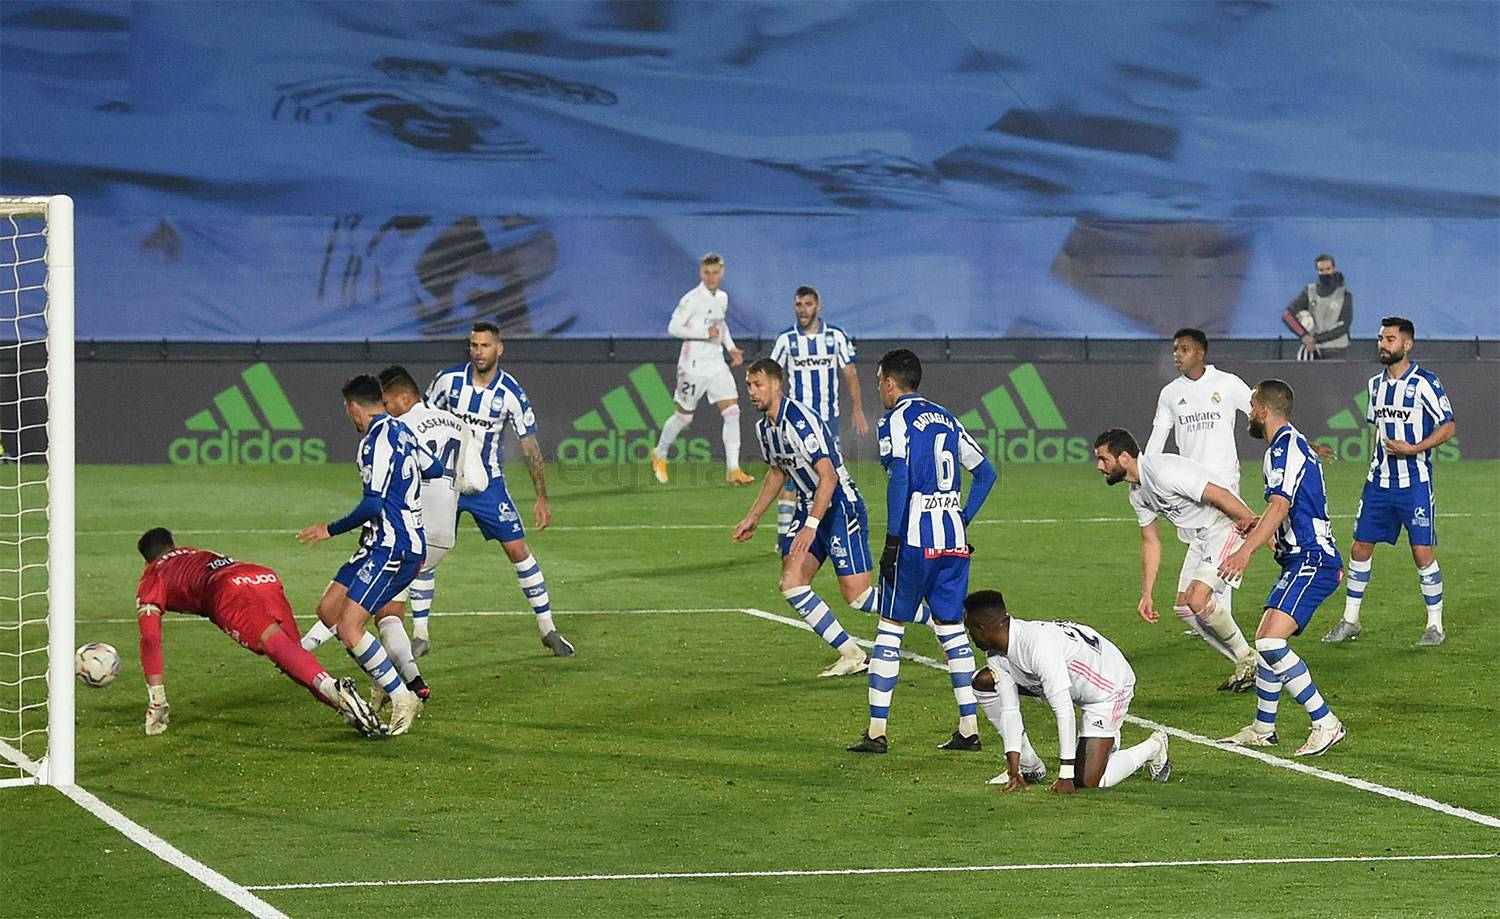 Real Madrid - Real Madrid - Alavés - 28-11-2020